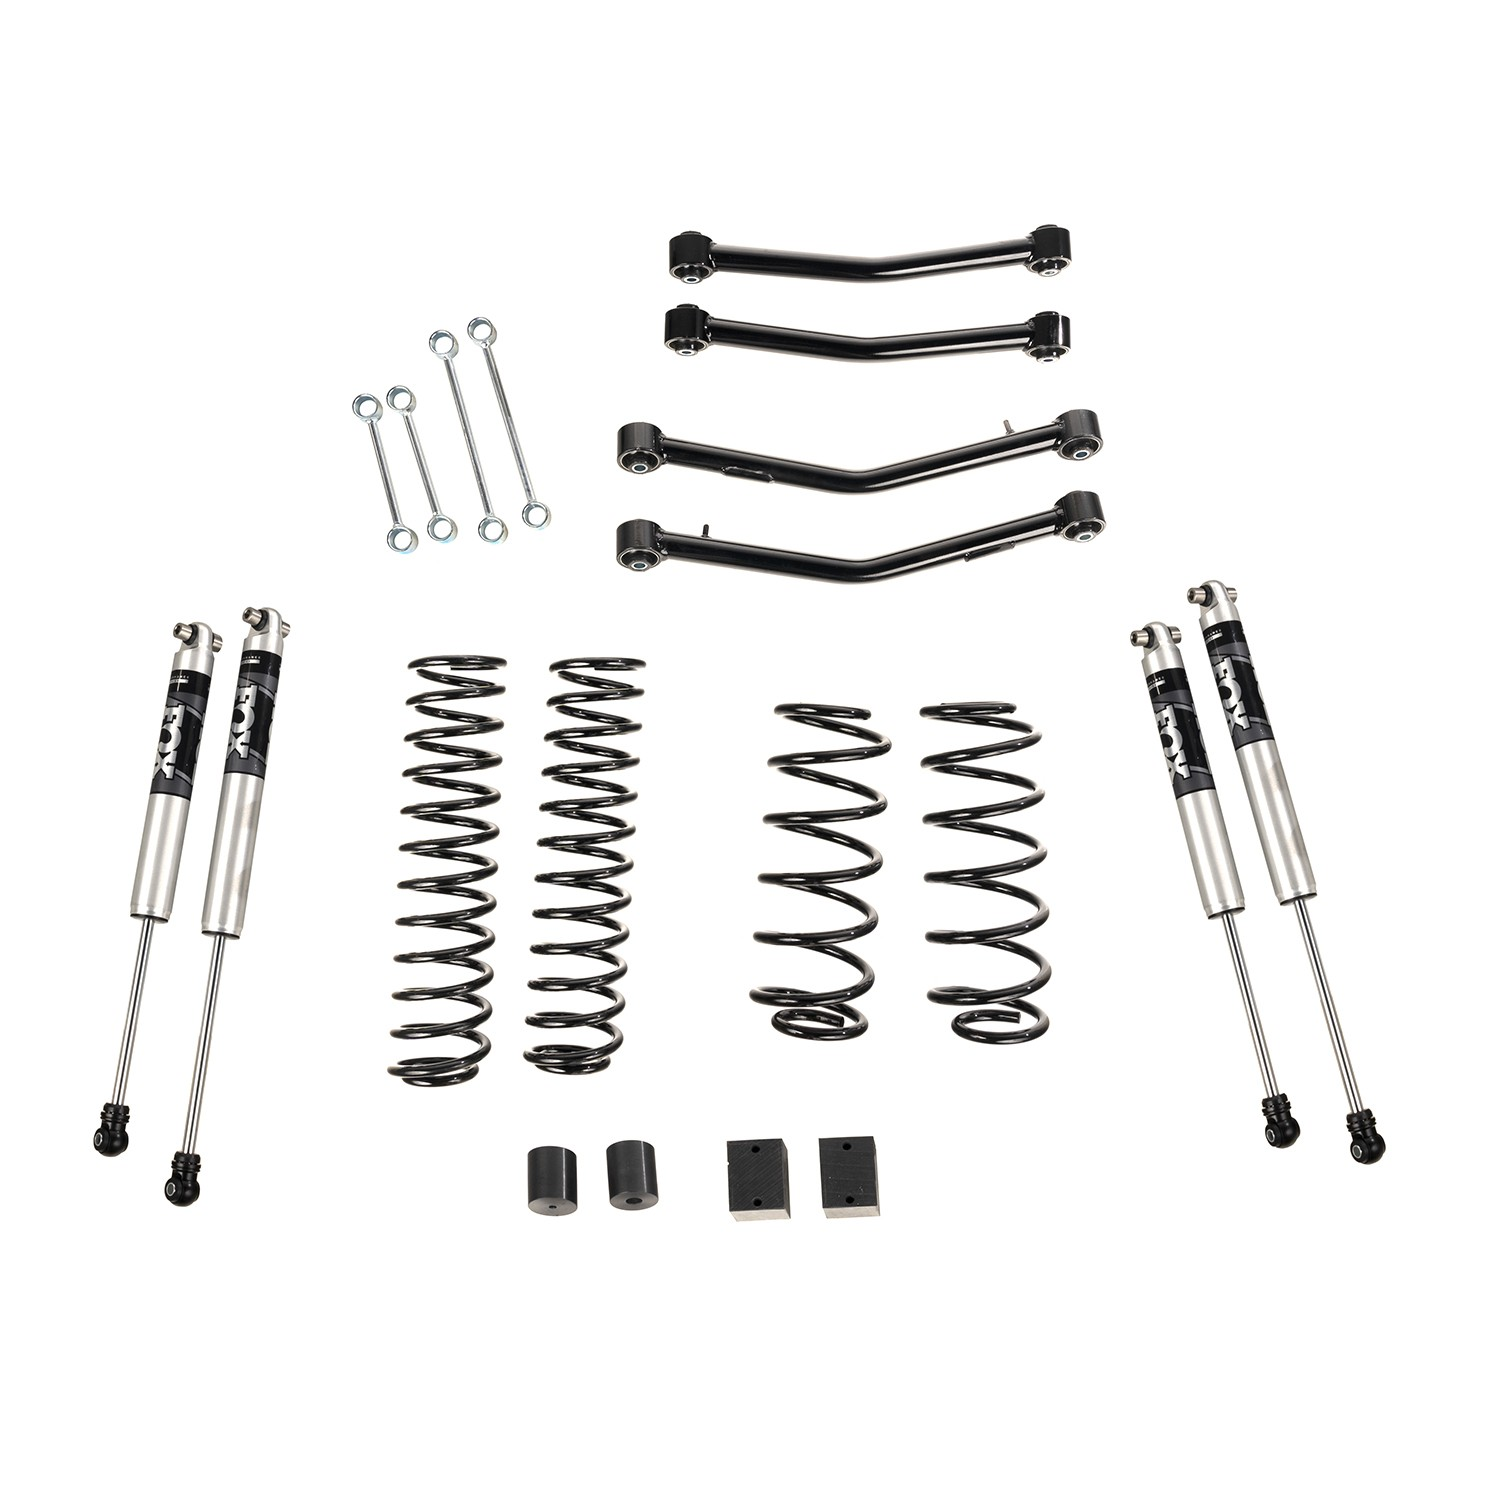 4 Lift Kit With Fox Shocks With Arms 18 19 Jeep